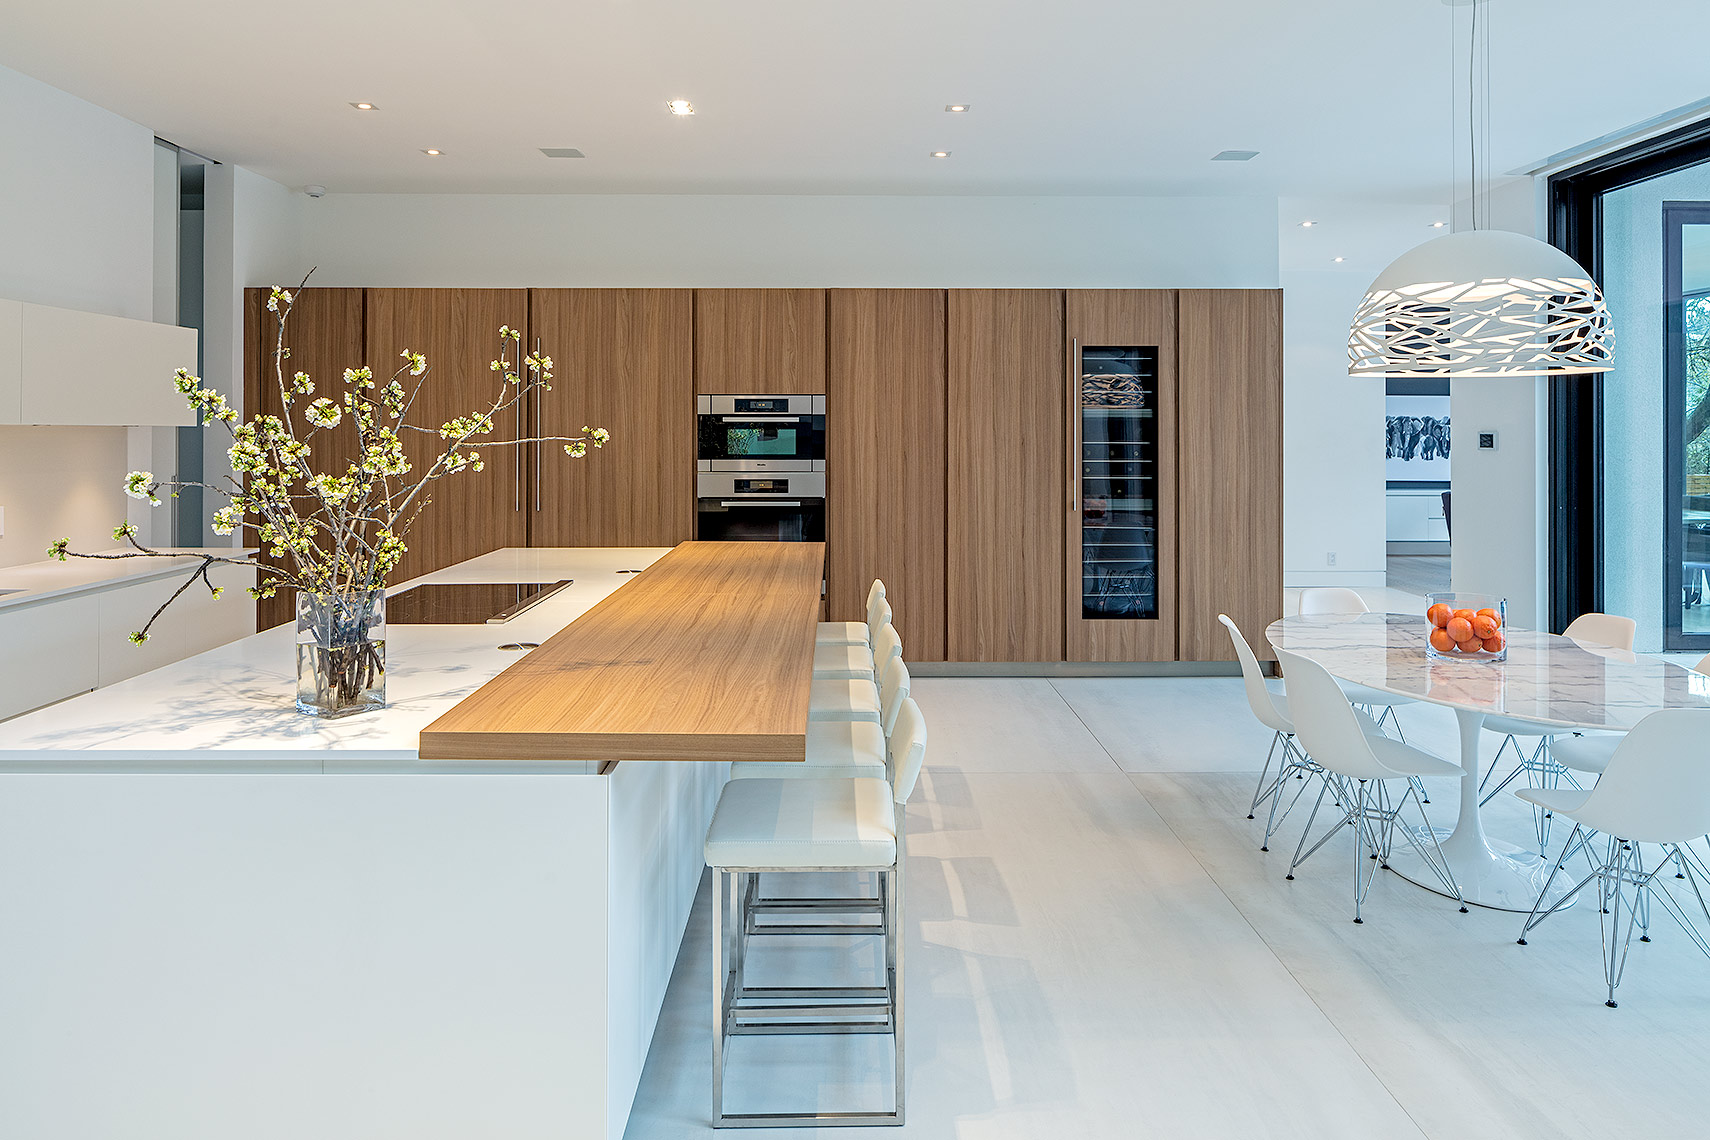 Modern kitchen in white and light wood by Peter A. Sellar Architectural Photographer